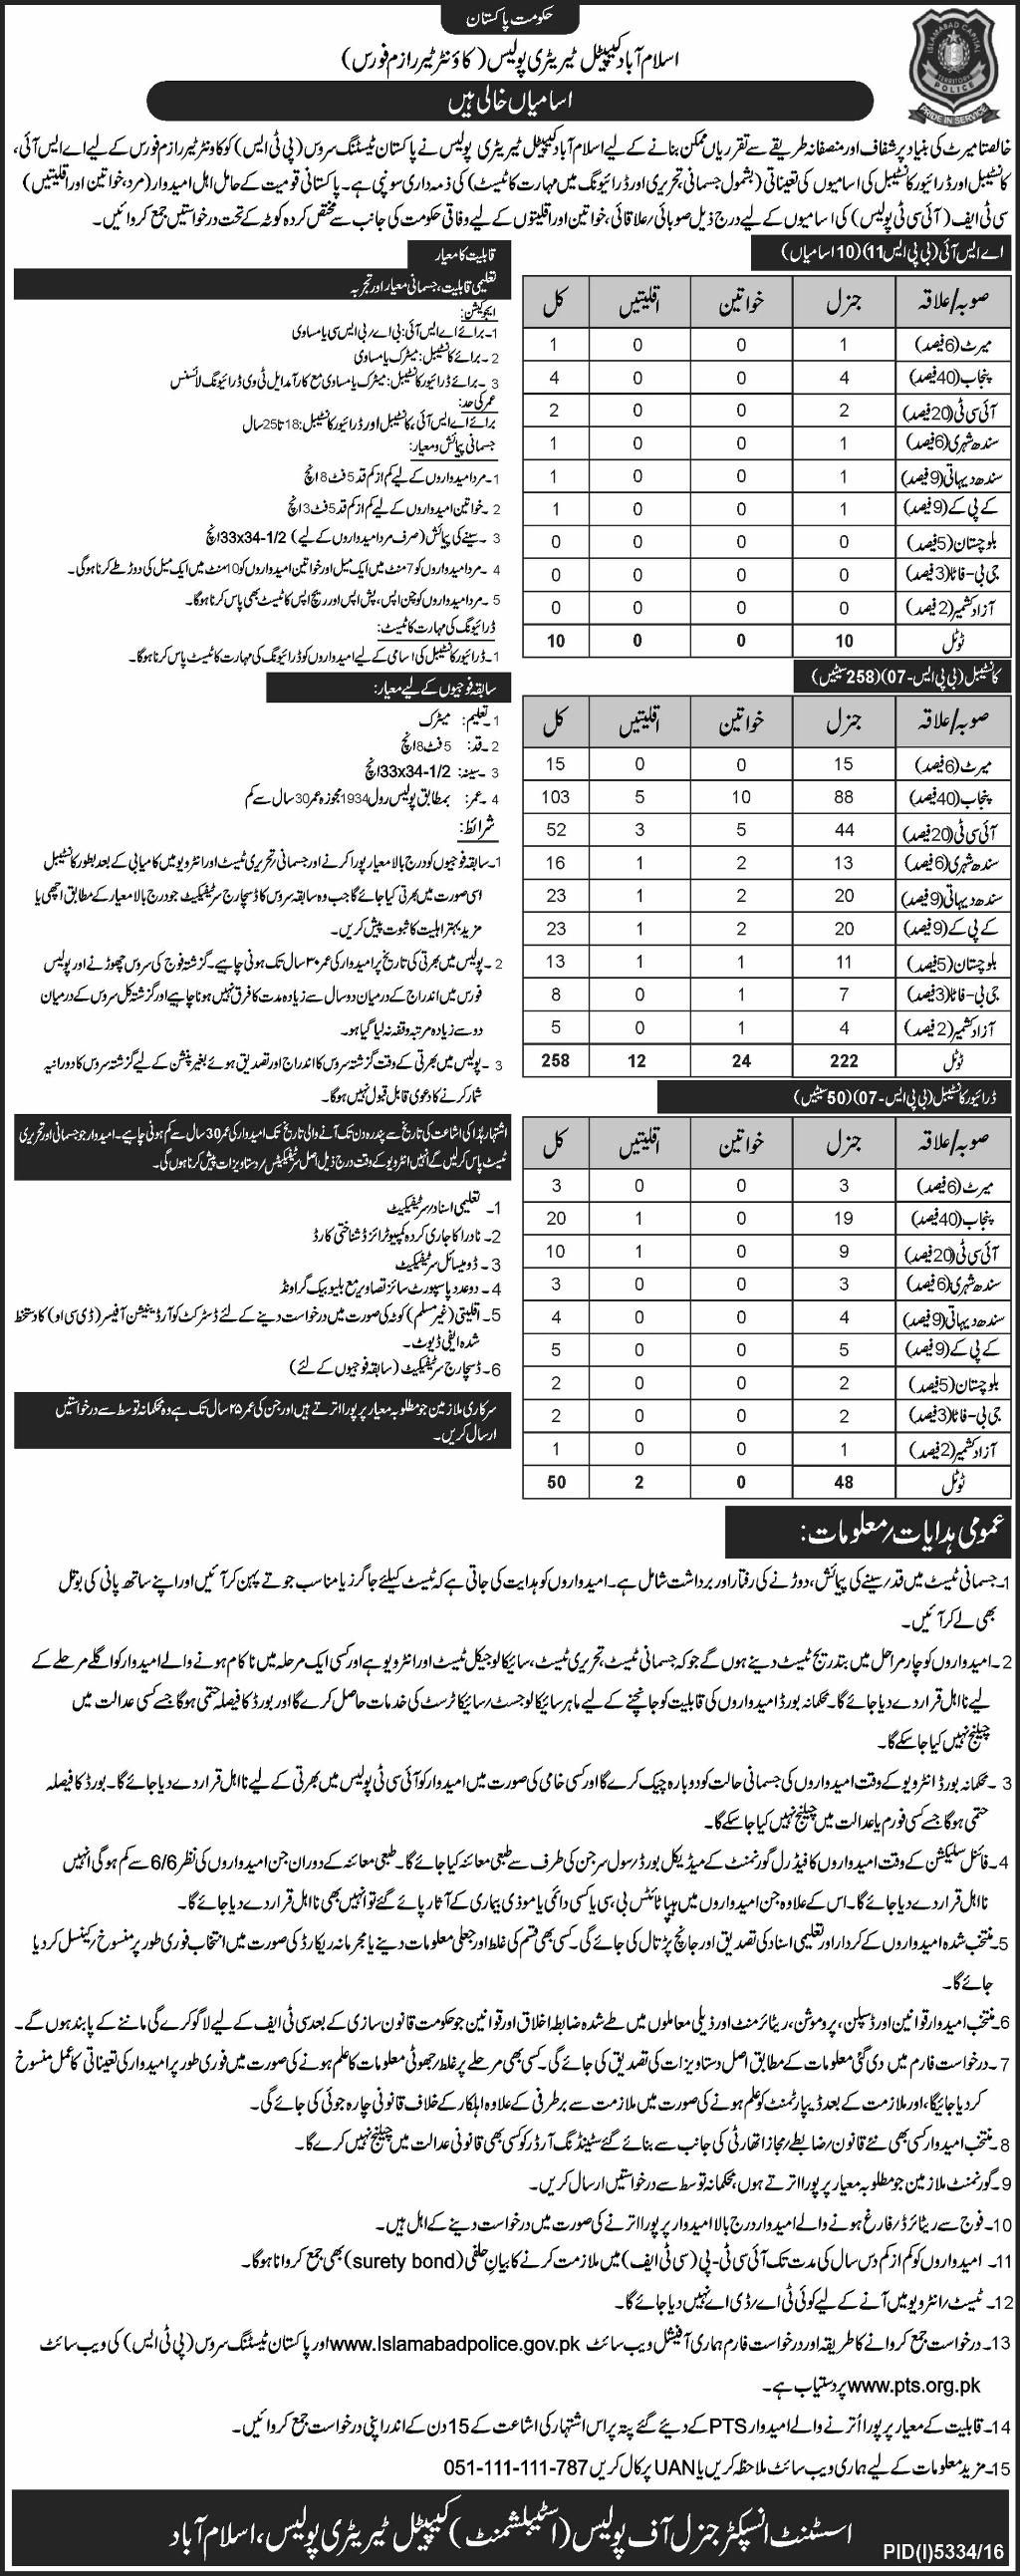 Islamabad Police Jobs 2018 PTS Form Last Date Eligibility